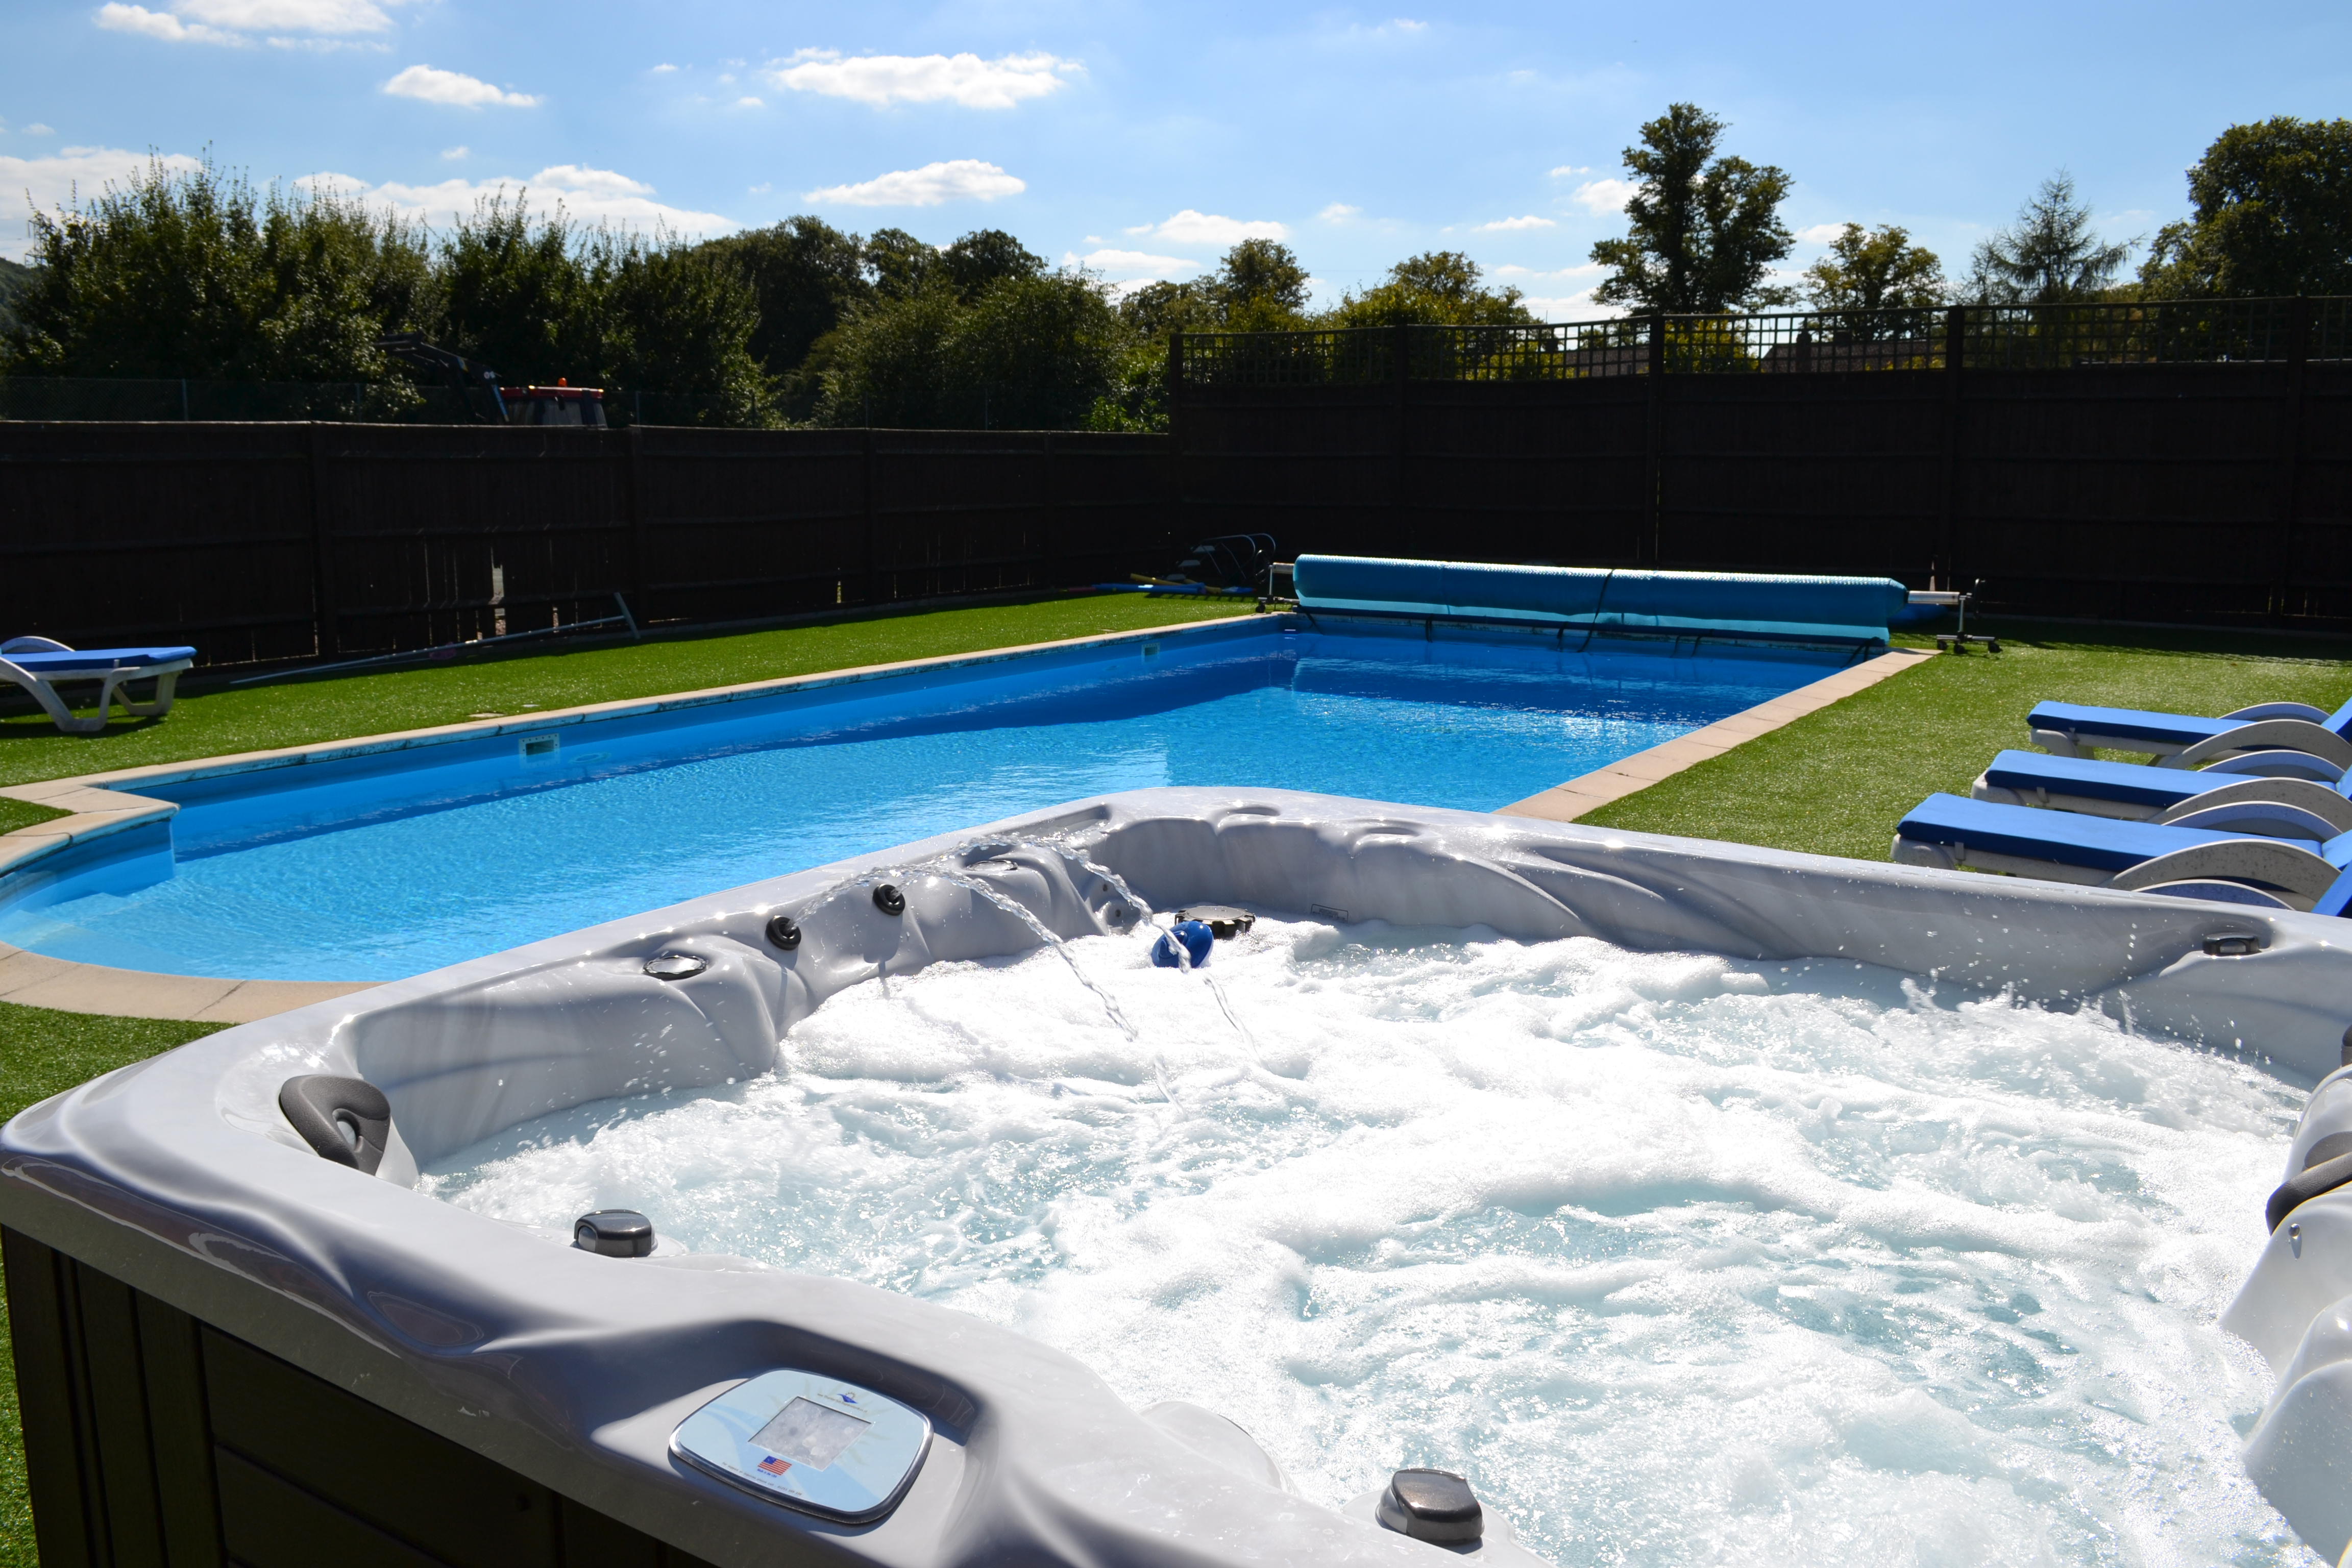 Jacuzzi With Swimming Pool Vacation Rental With Hot Tub The Pool House At Upper Farm Henton